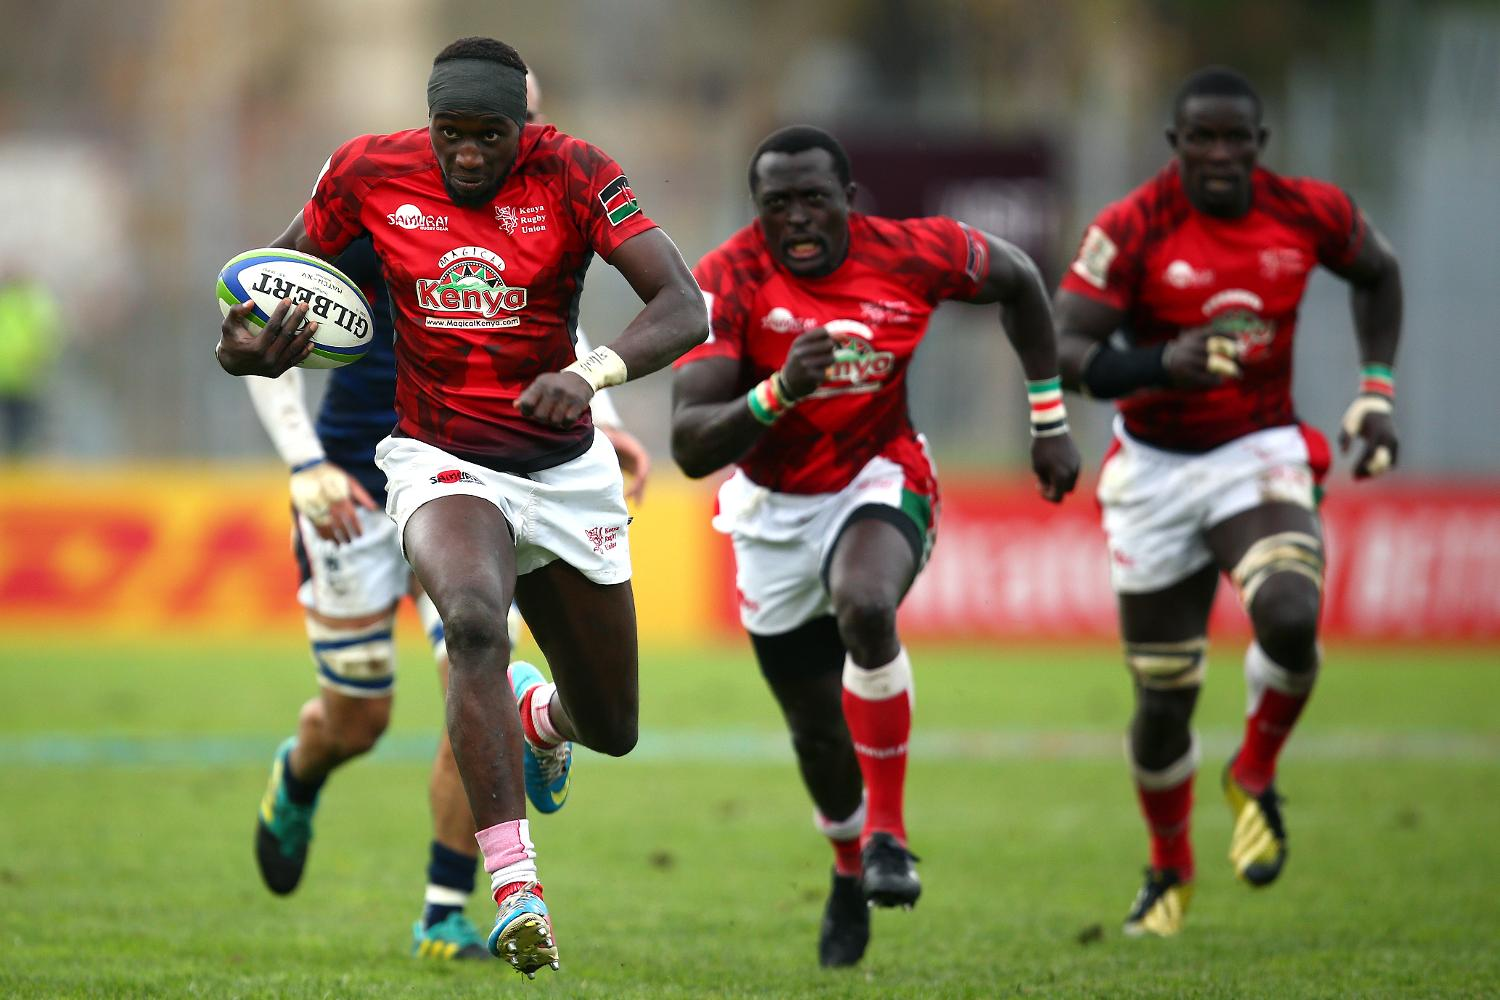 Hong Kong v Kenya - Rugby World Cup 2019 Repechage